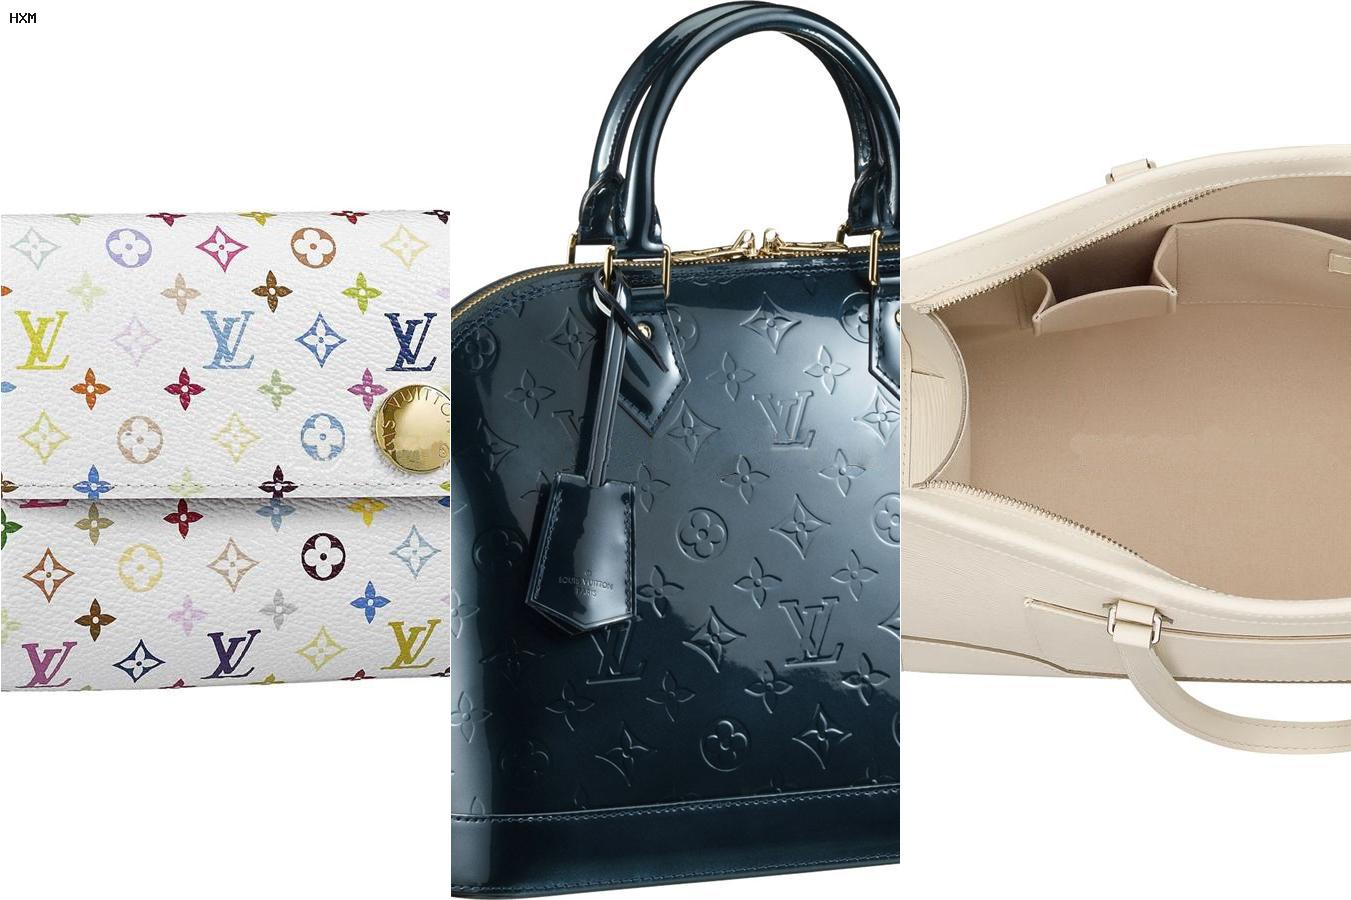 louis vuitton bags shop online sale